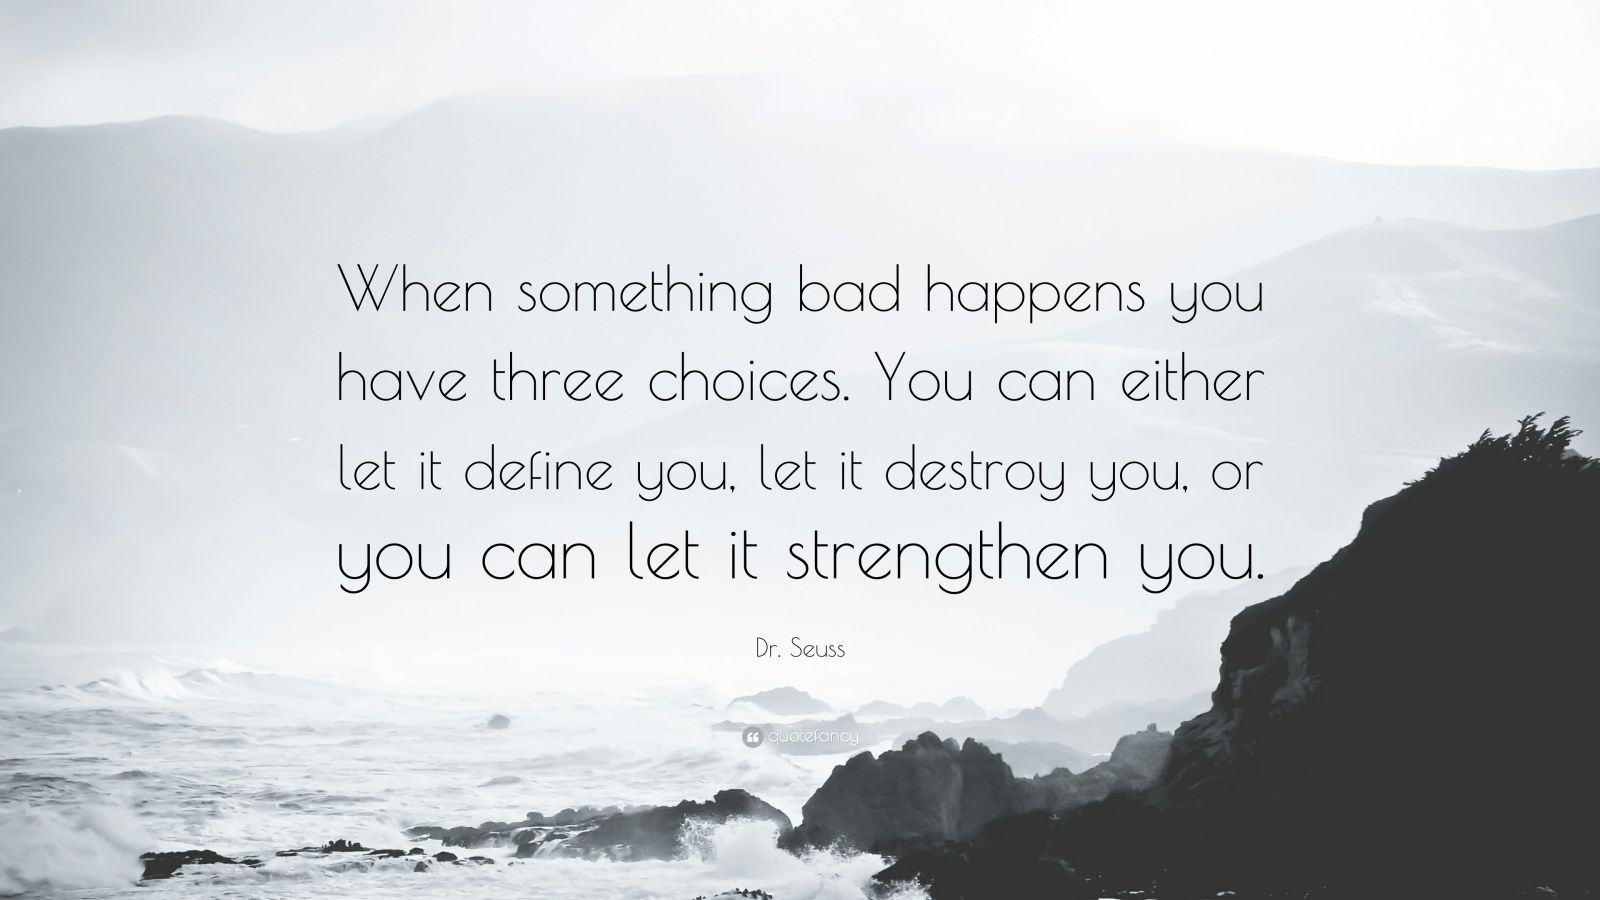 "Choices Quotes: ""When something bad happens you have three choices. You can either let it define you, let it destroy you, or you can let it strengthen you."" — Dr. Seuss"